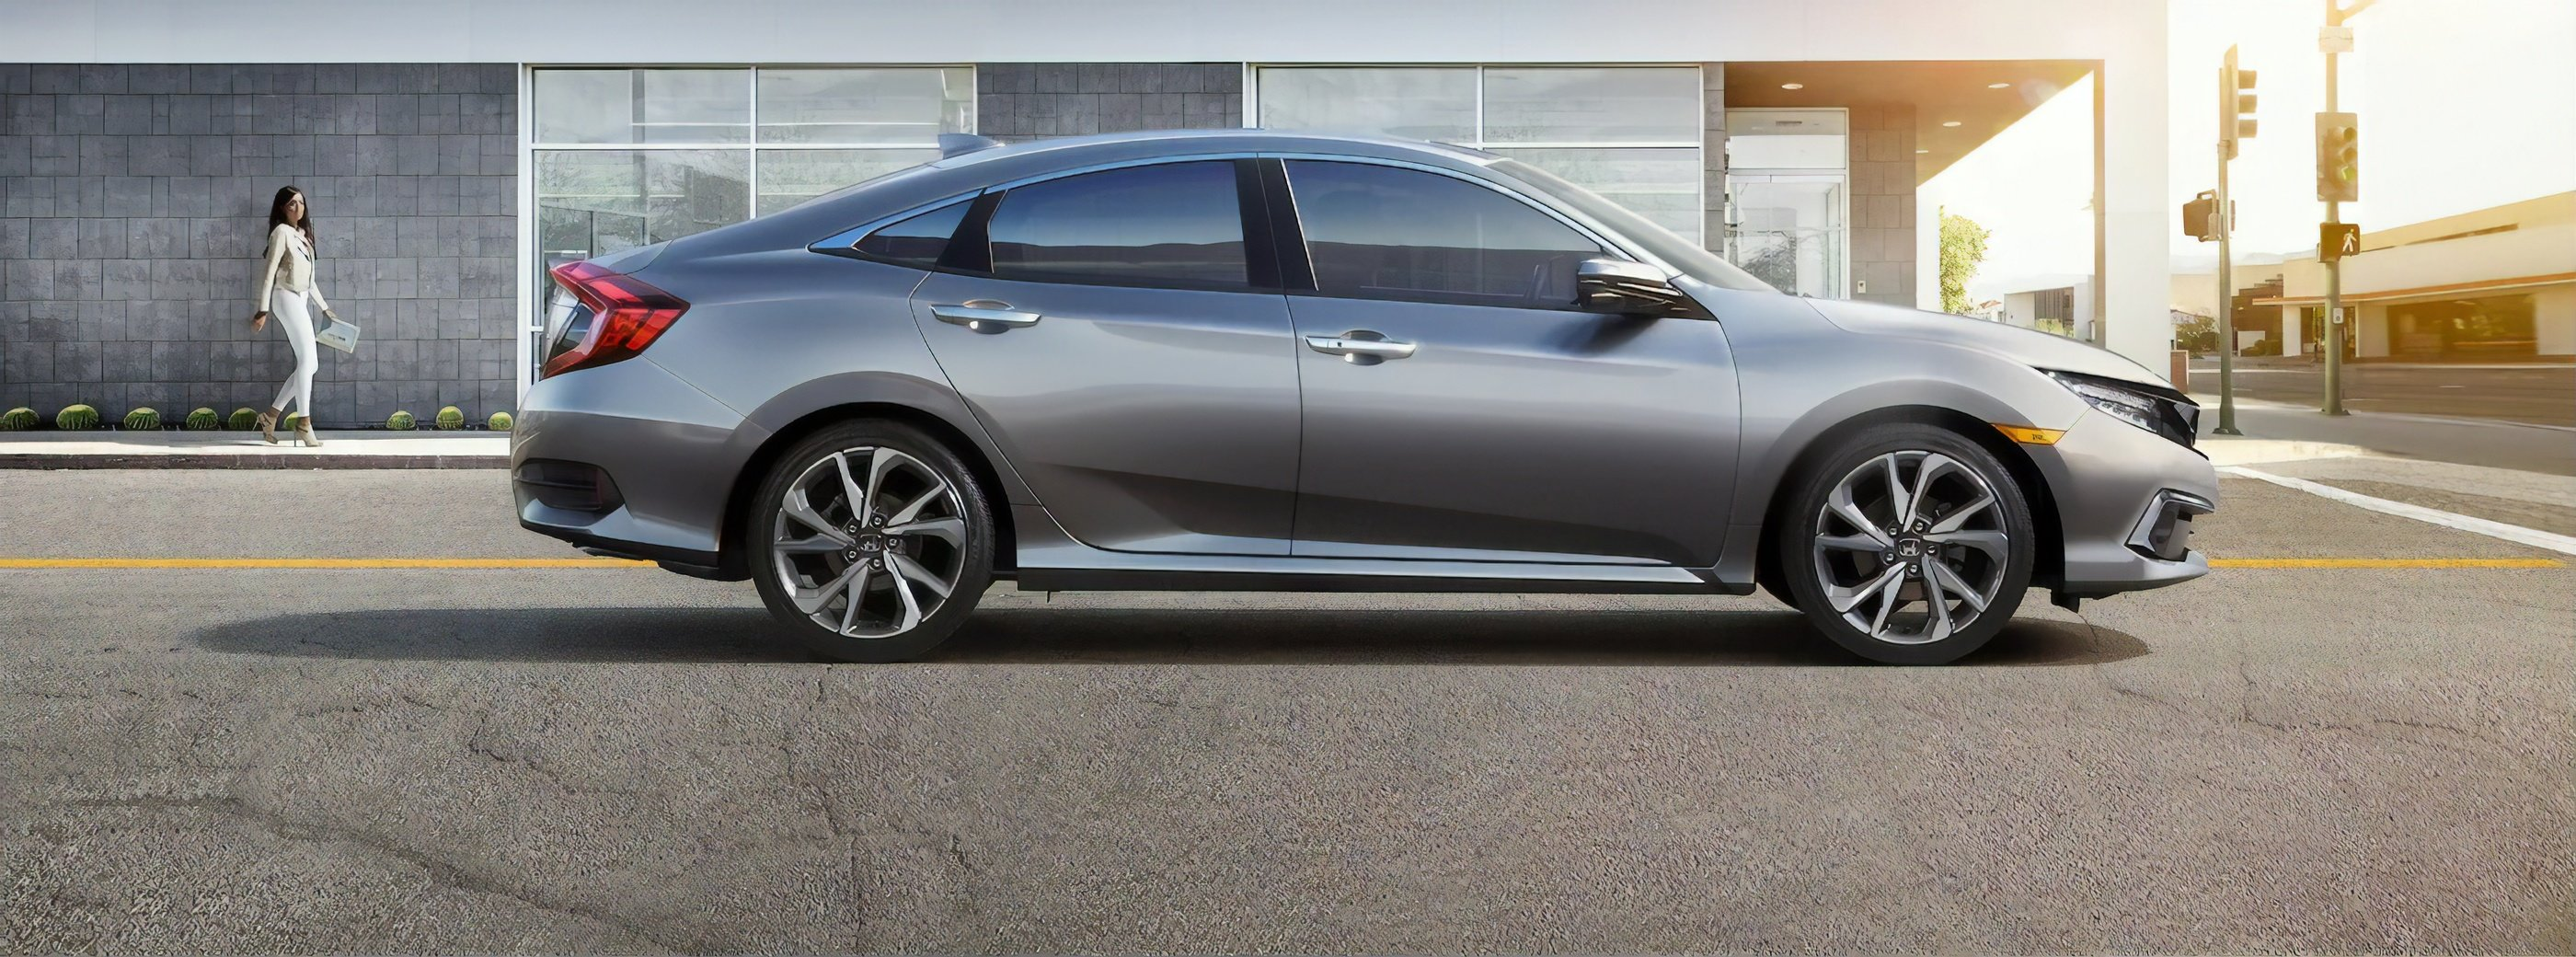 Cheapest Car To Lease >> Honda Civic Lease Specials Prices Lynn Ma